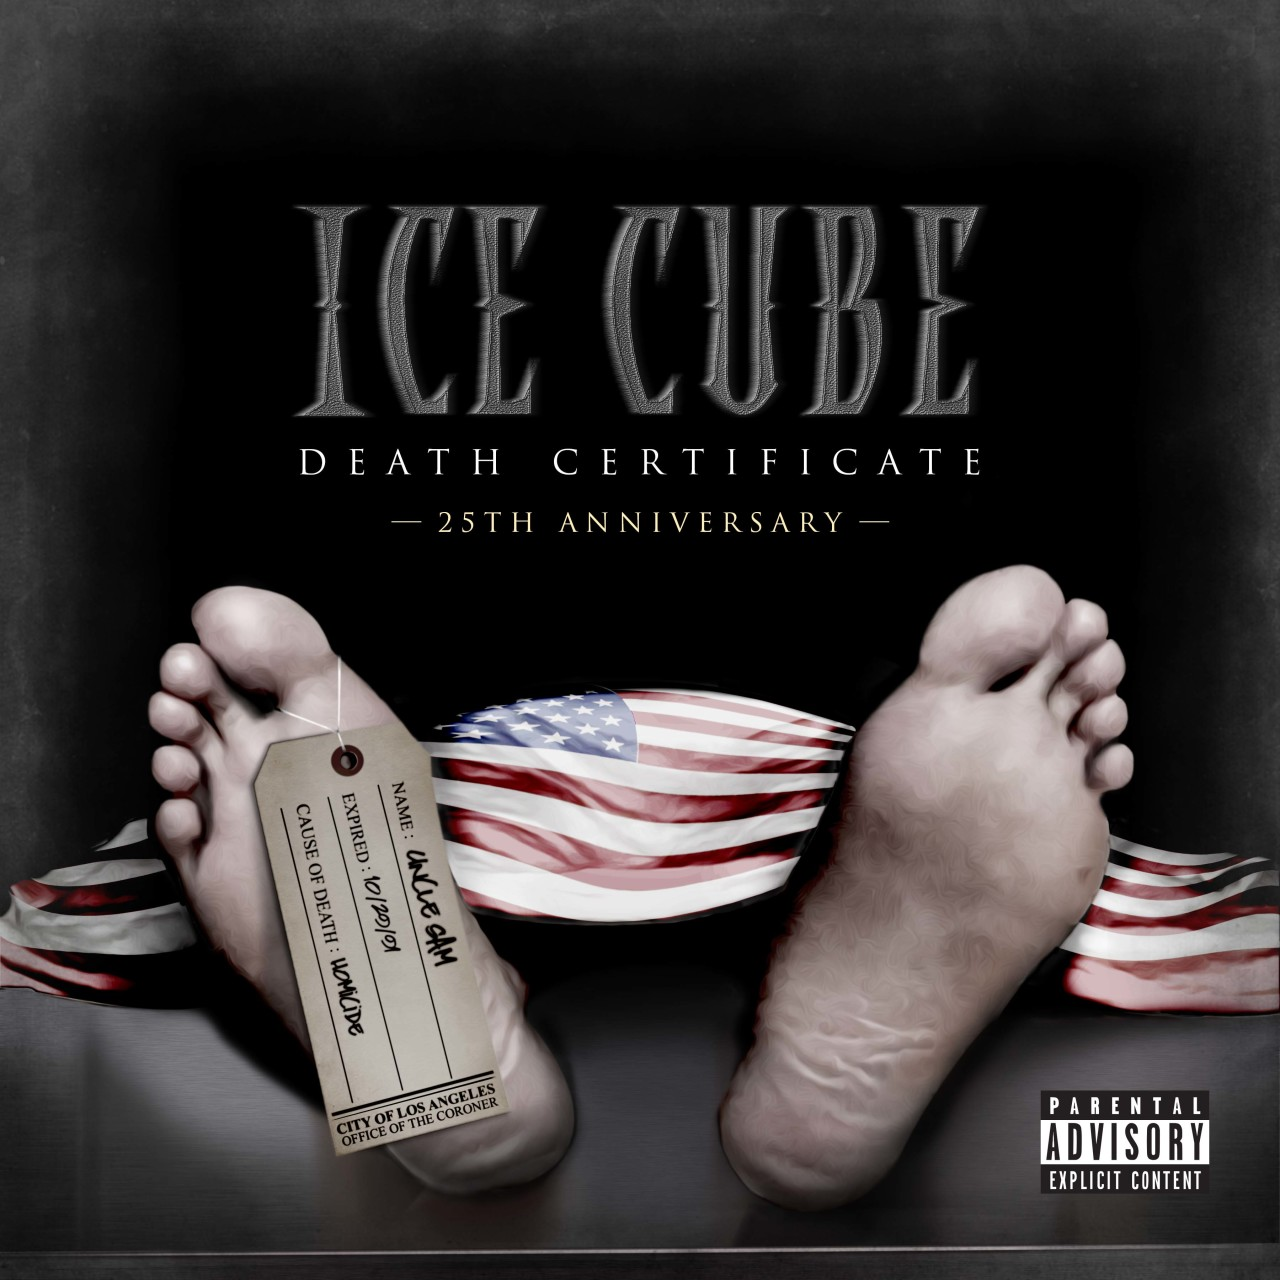 Ice Cube Cover Photo Top ice cube- 25th anniersary of death cetififcate cover contest